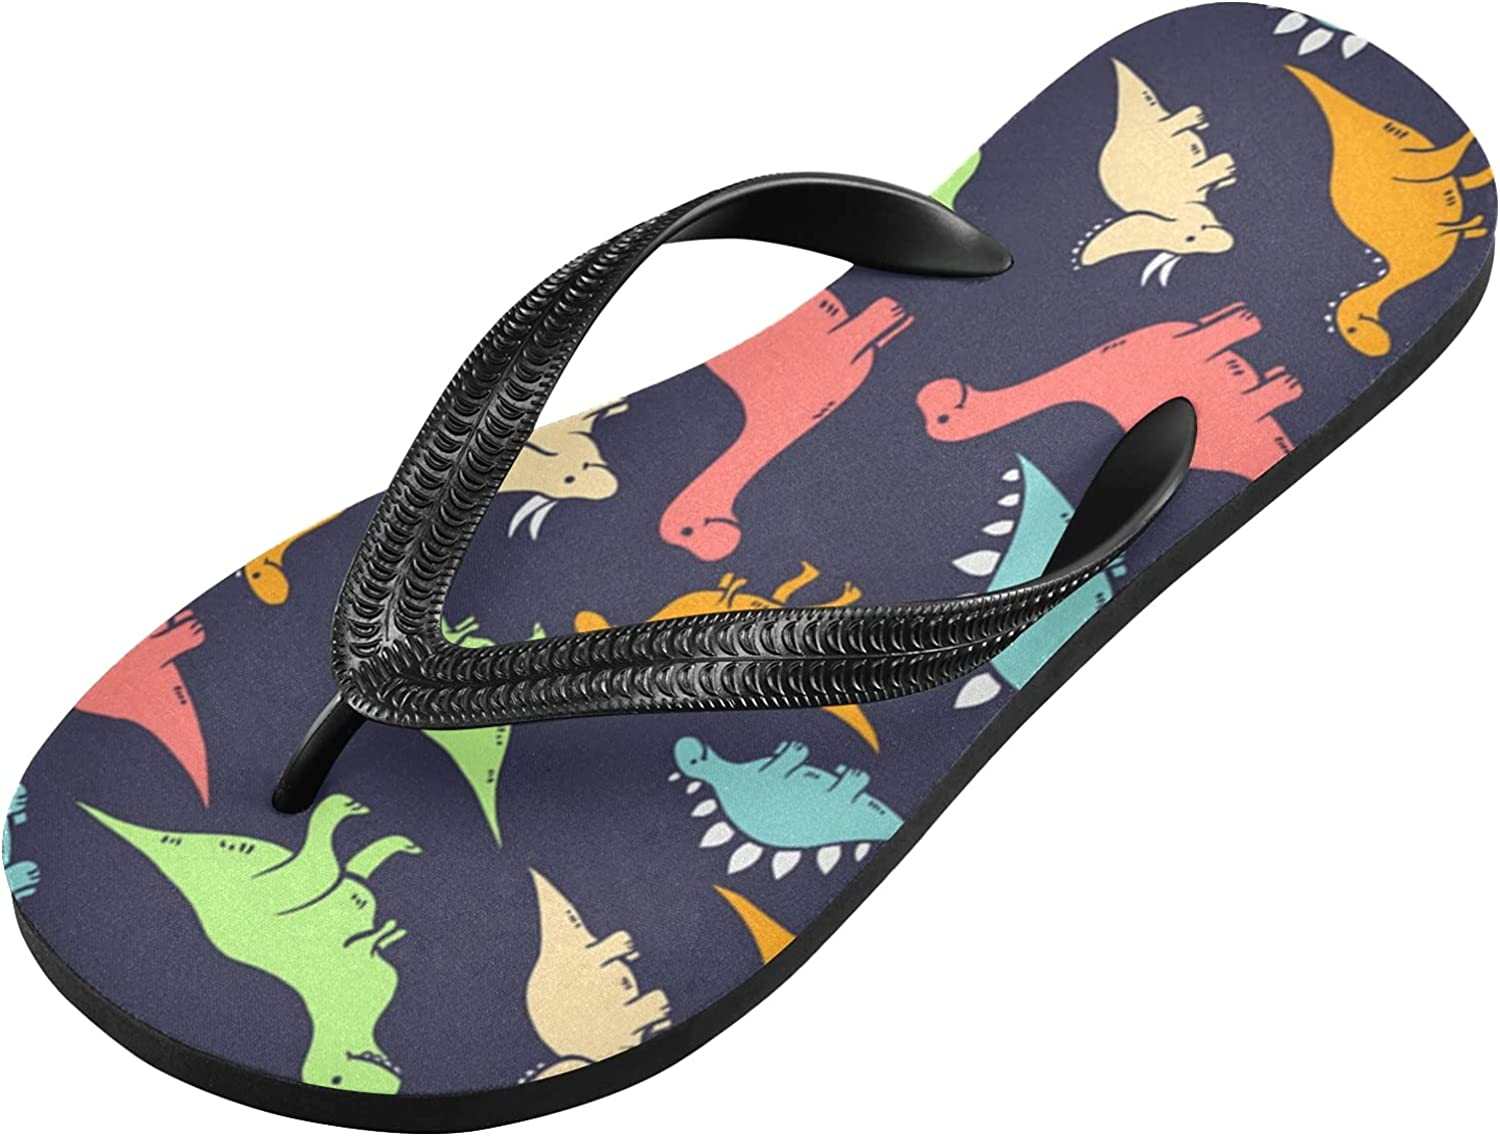 Qilmy Colorful Dinosaurs Flip Flop Lightweight Casual Non-slip S Safety and trust Max 46% OFF